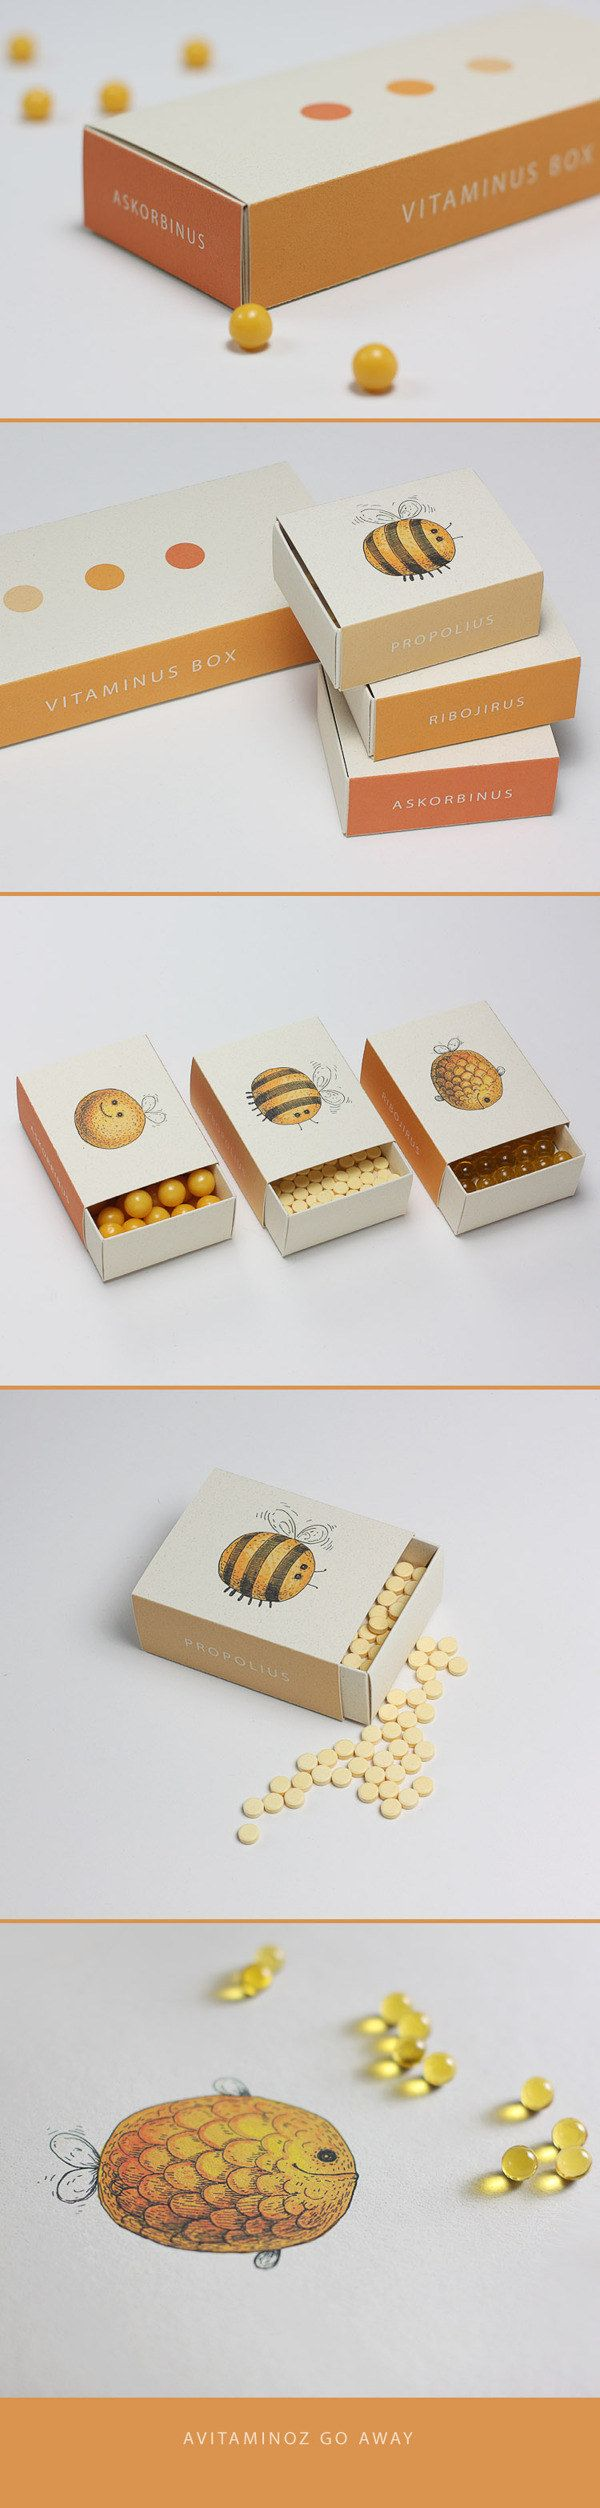 The cutest vitamin boxes imaginable.